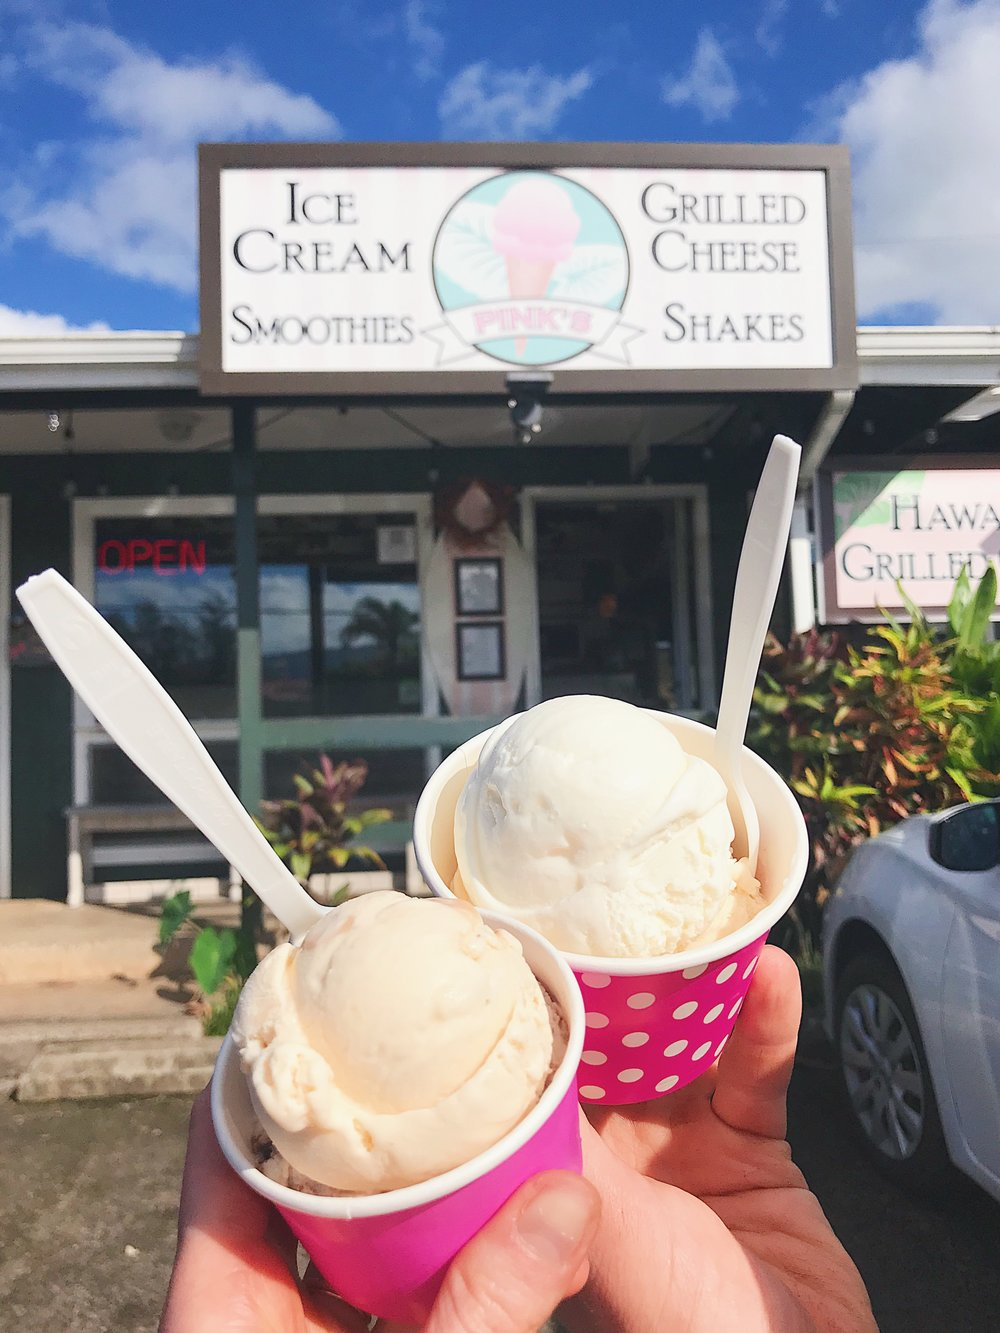 Pink's Ice Cream - A cute little ice cream shop up north in Hanalei. They have amazing flavours! I recommend the Banana Mac-Nut Brittle & the Haupia (coconut custard.) The Chocolate Chip Ripple is also very good but I feel like you can find ice cream similar to this flavour at lots of places where as the first two are so unique! I chose to get dairy ice cream however they do have vegan flavours here!